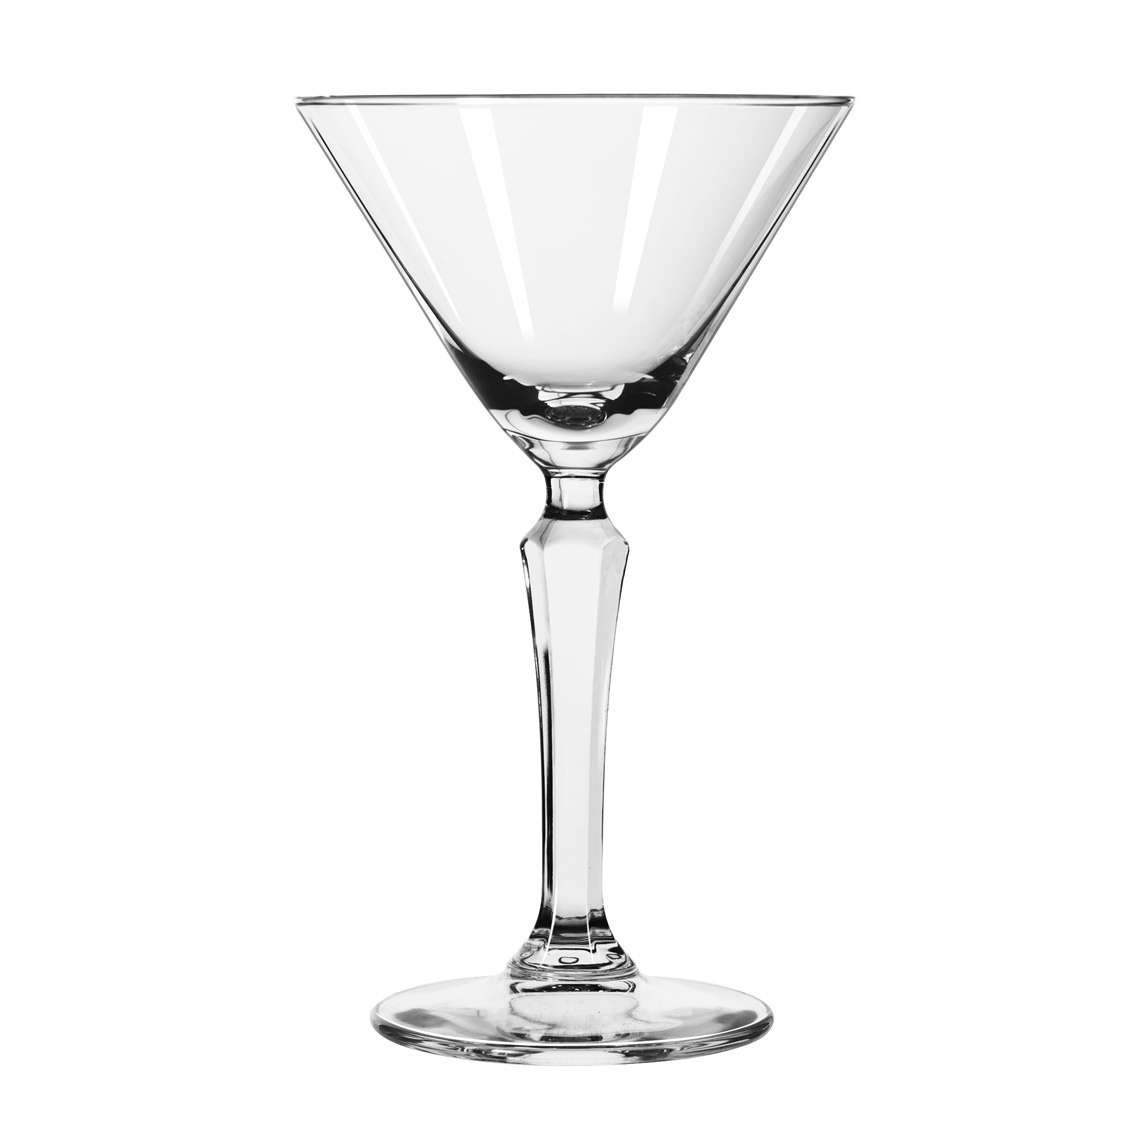 Libbey Glass 601404 glass, cocktail / martini